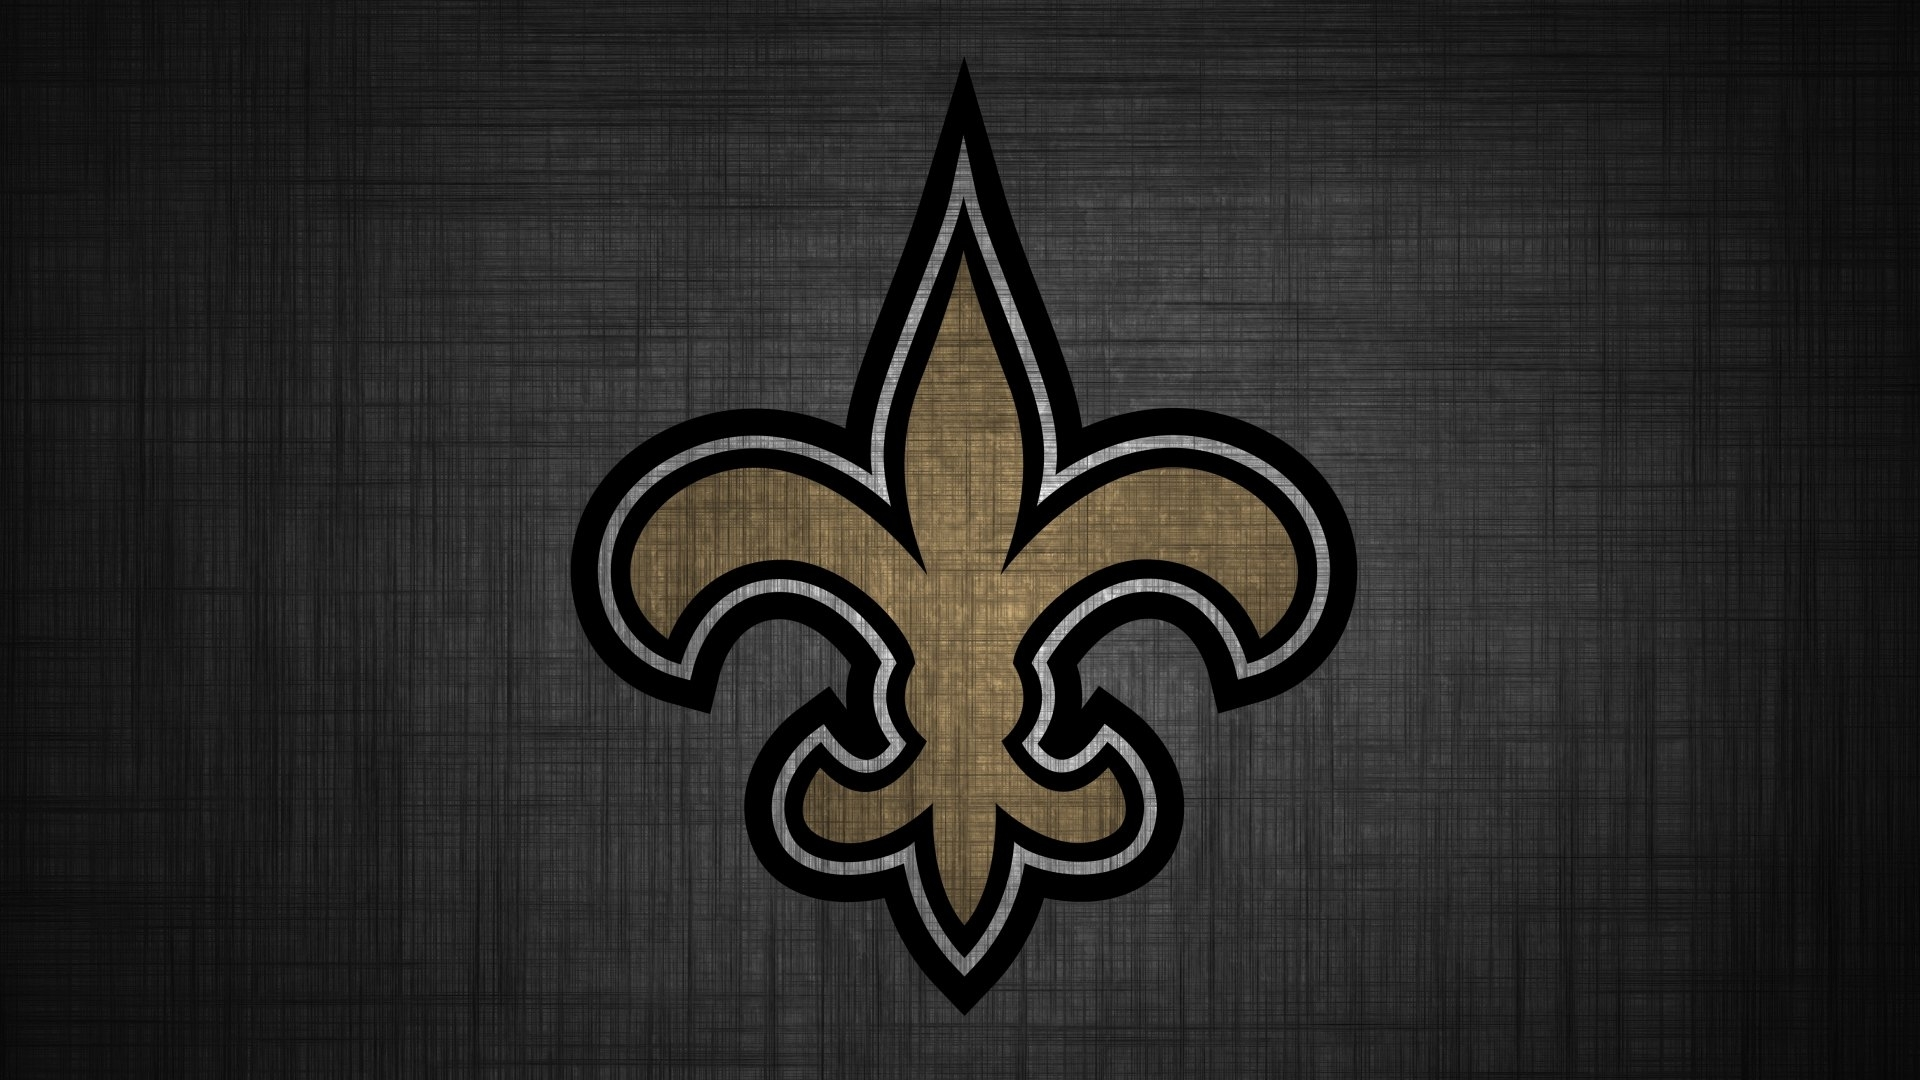 new orleans saints logo desktop wallpaper 56000 1920x1080 px